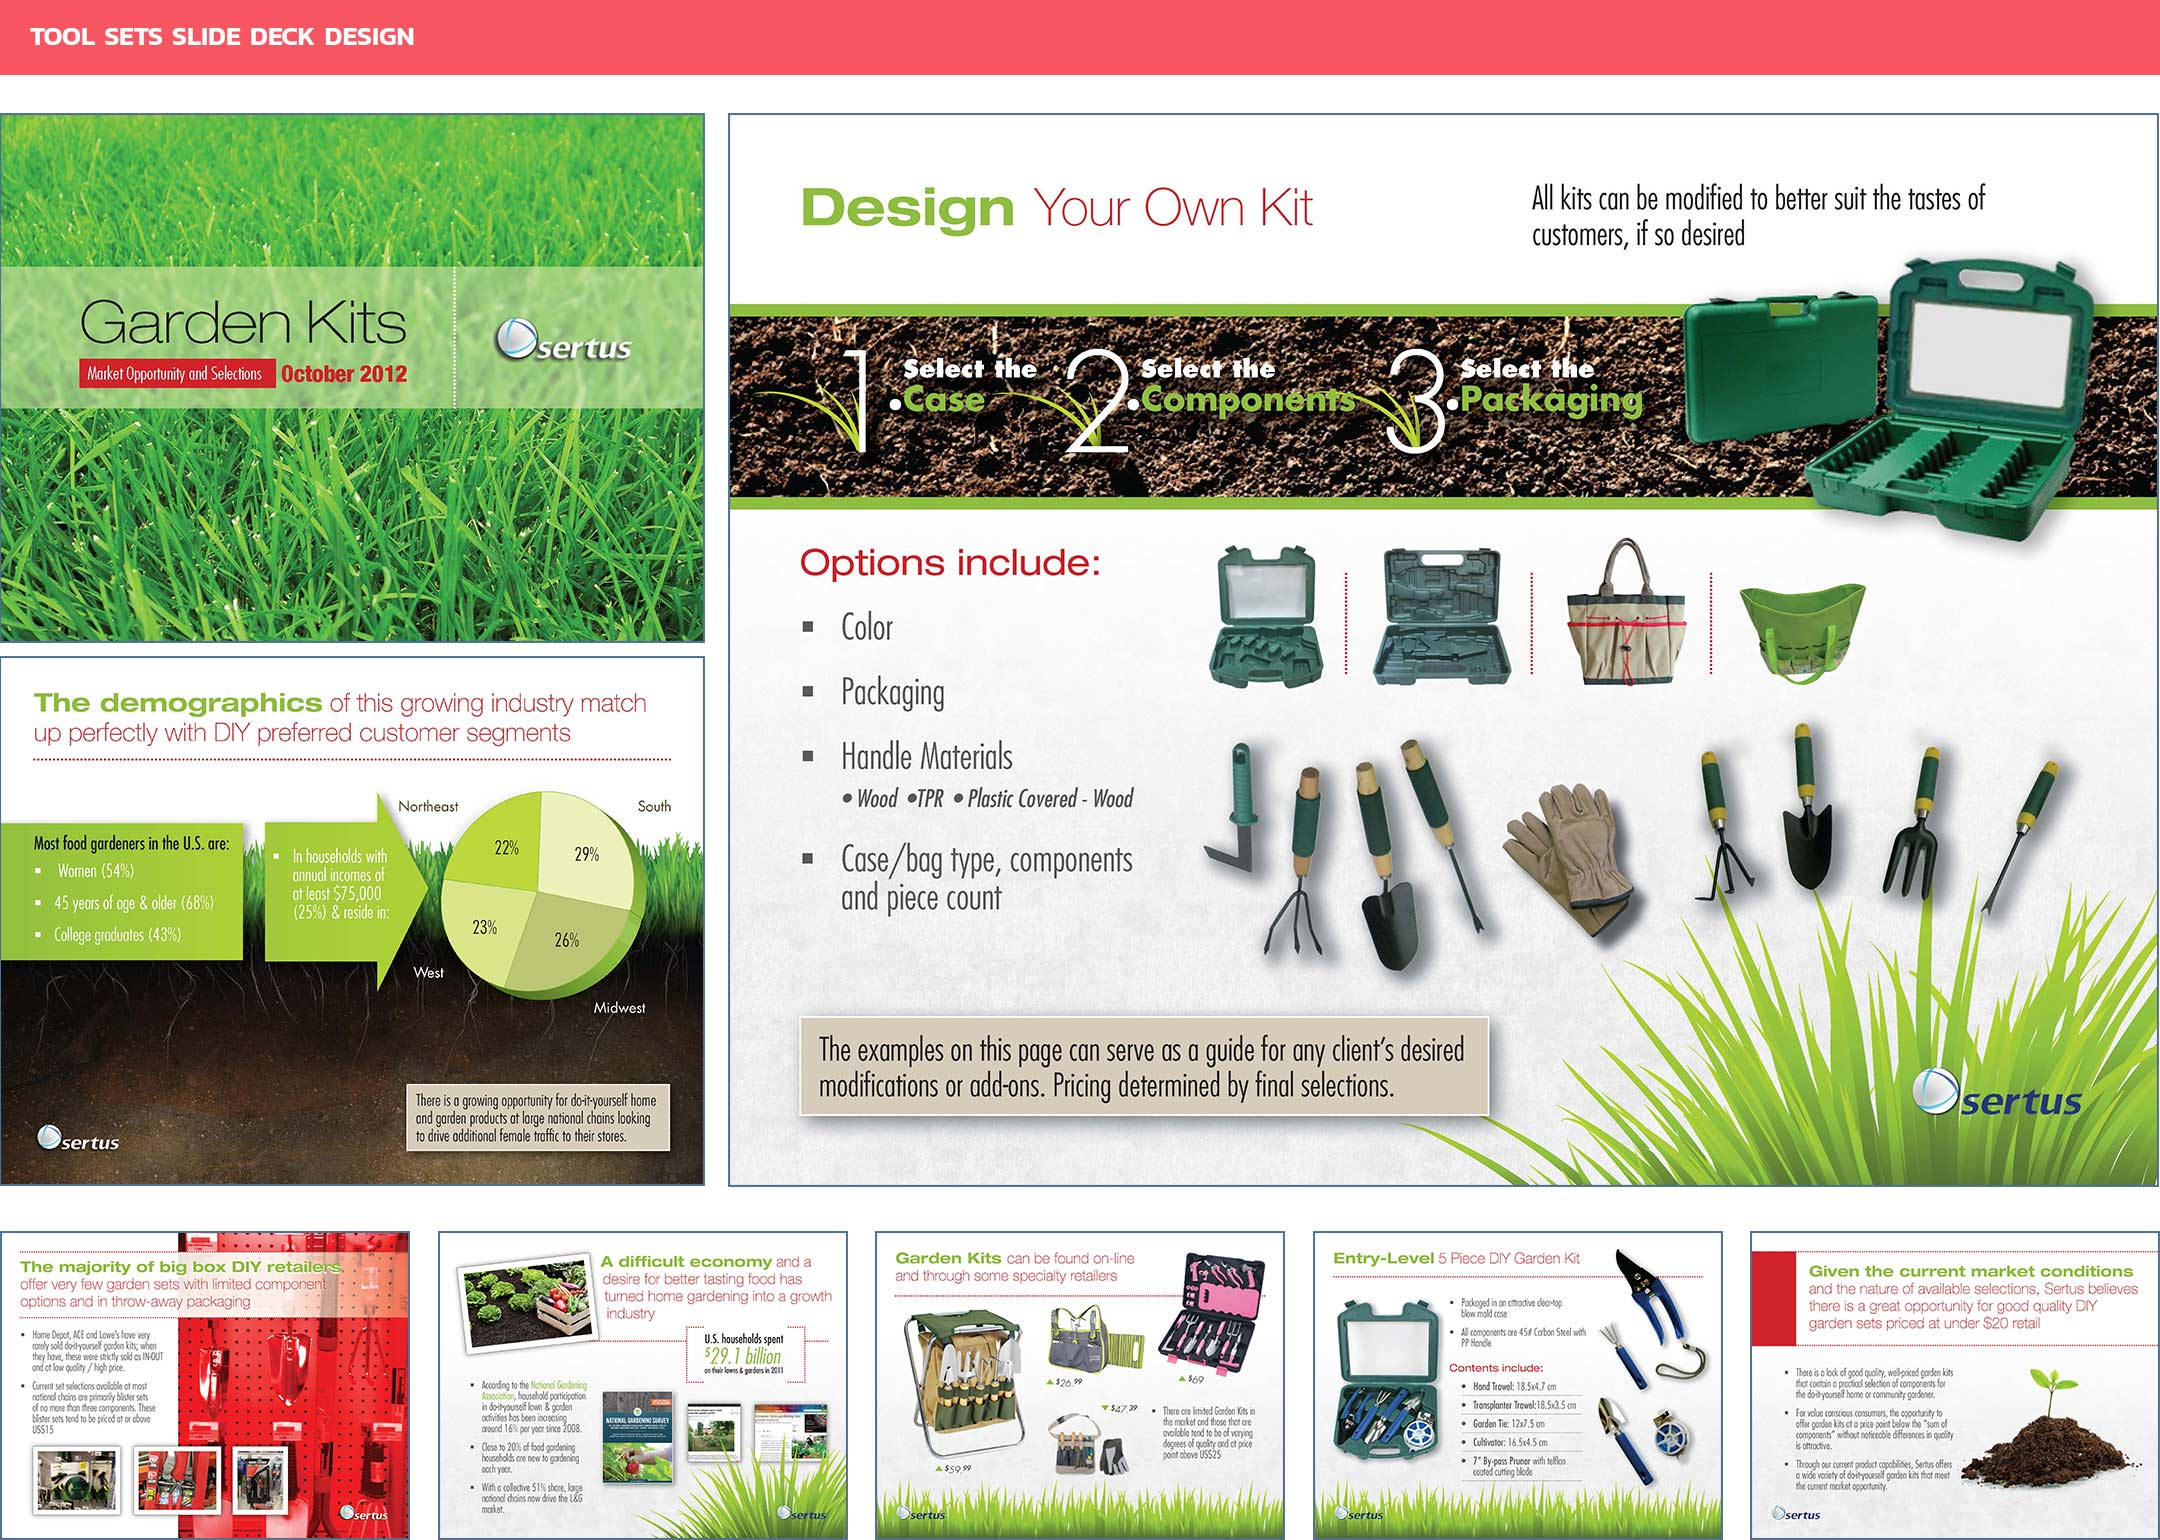 Garden Kit Slide Deck Design